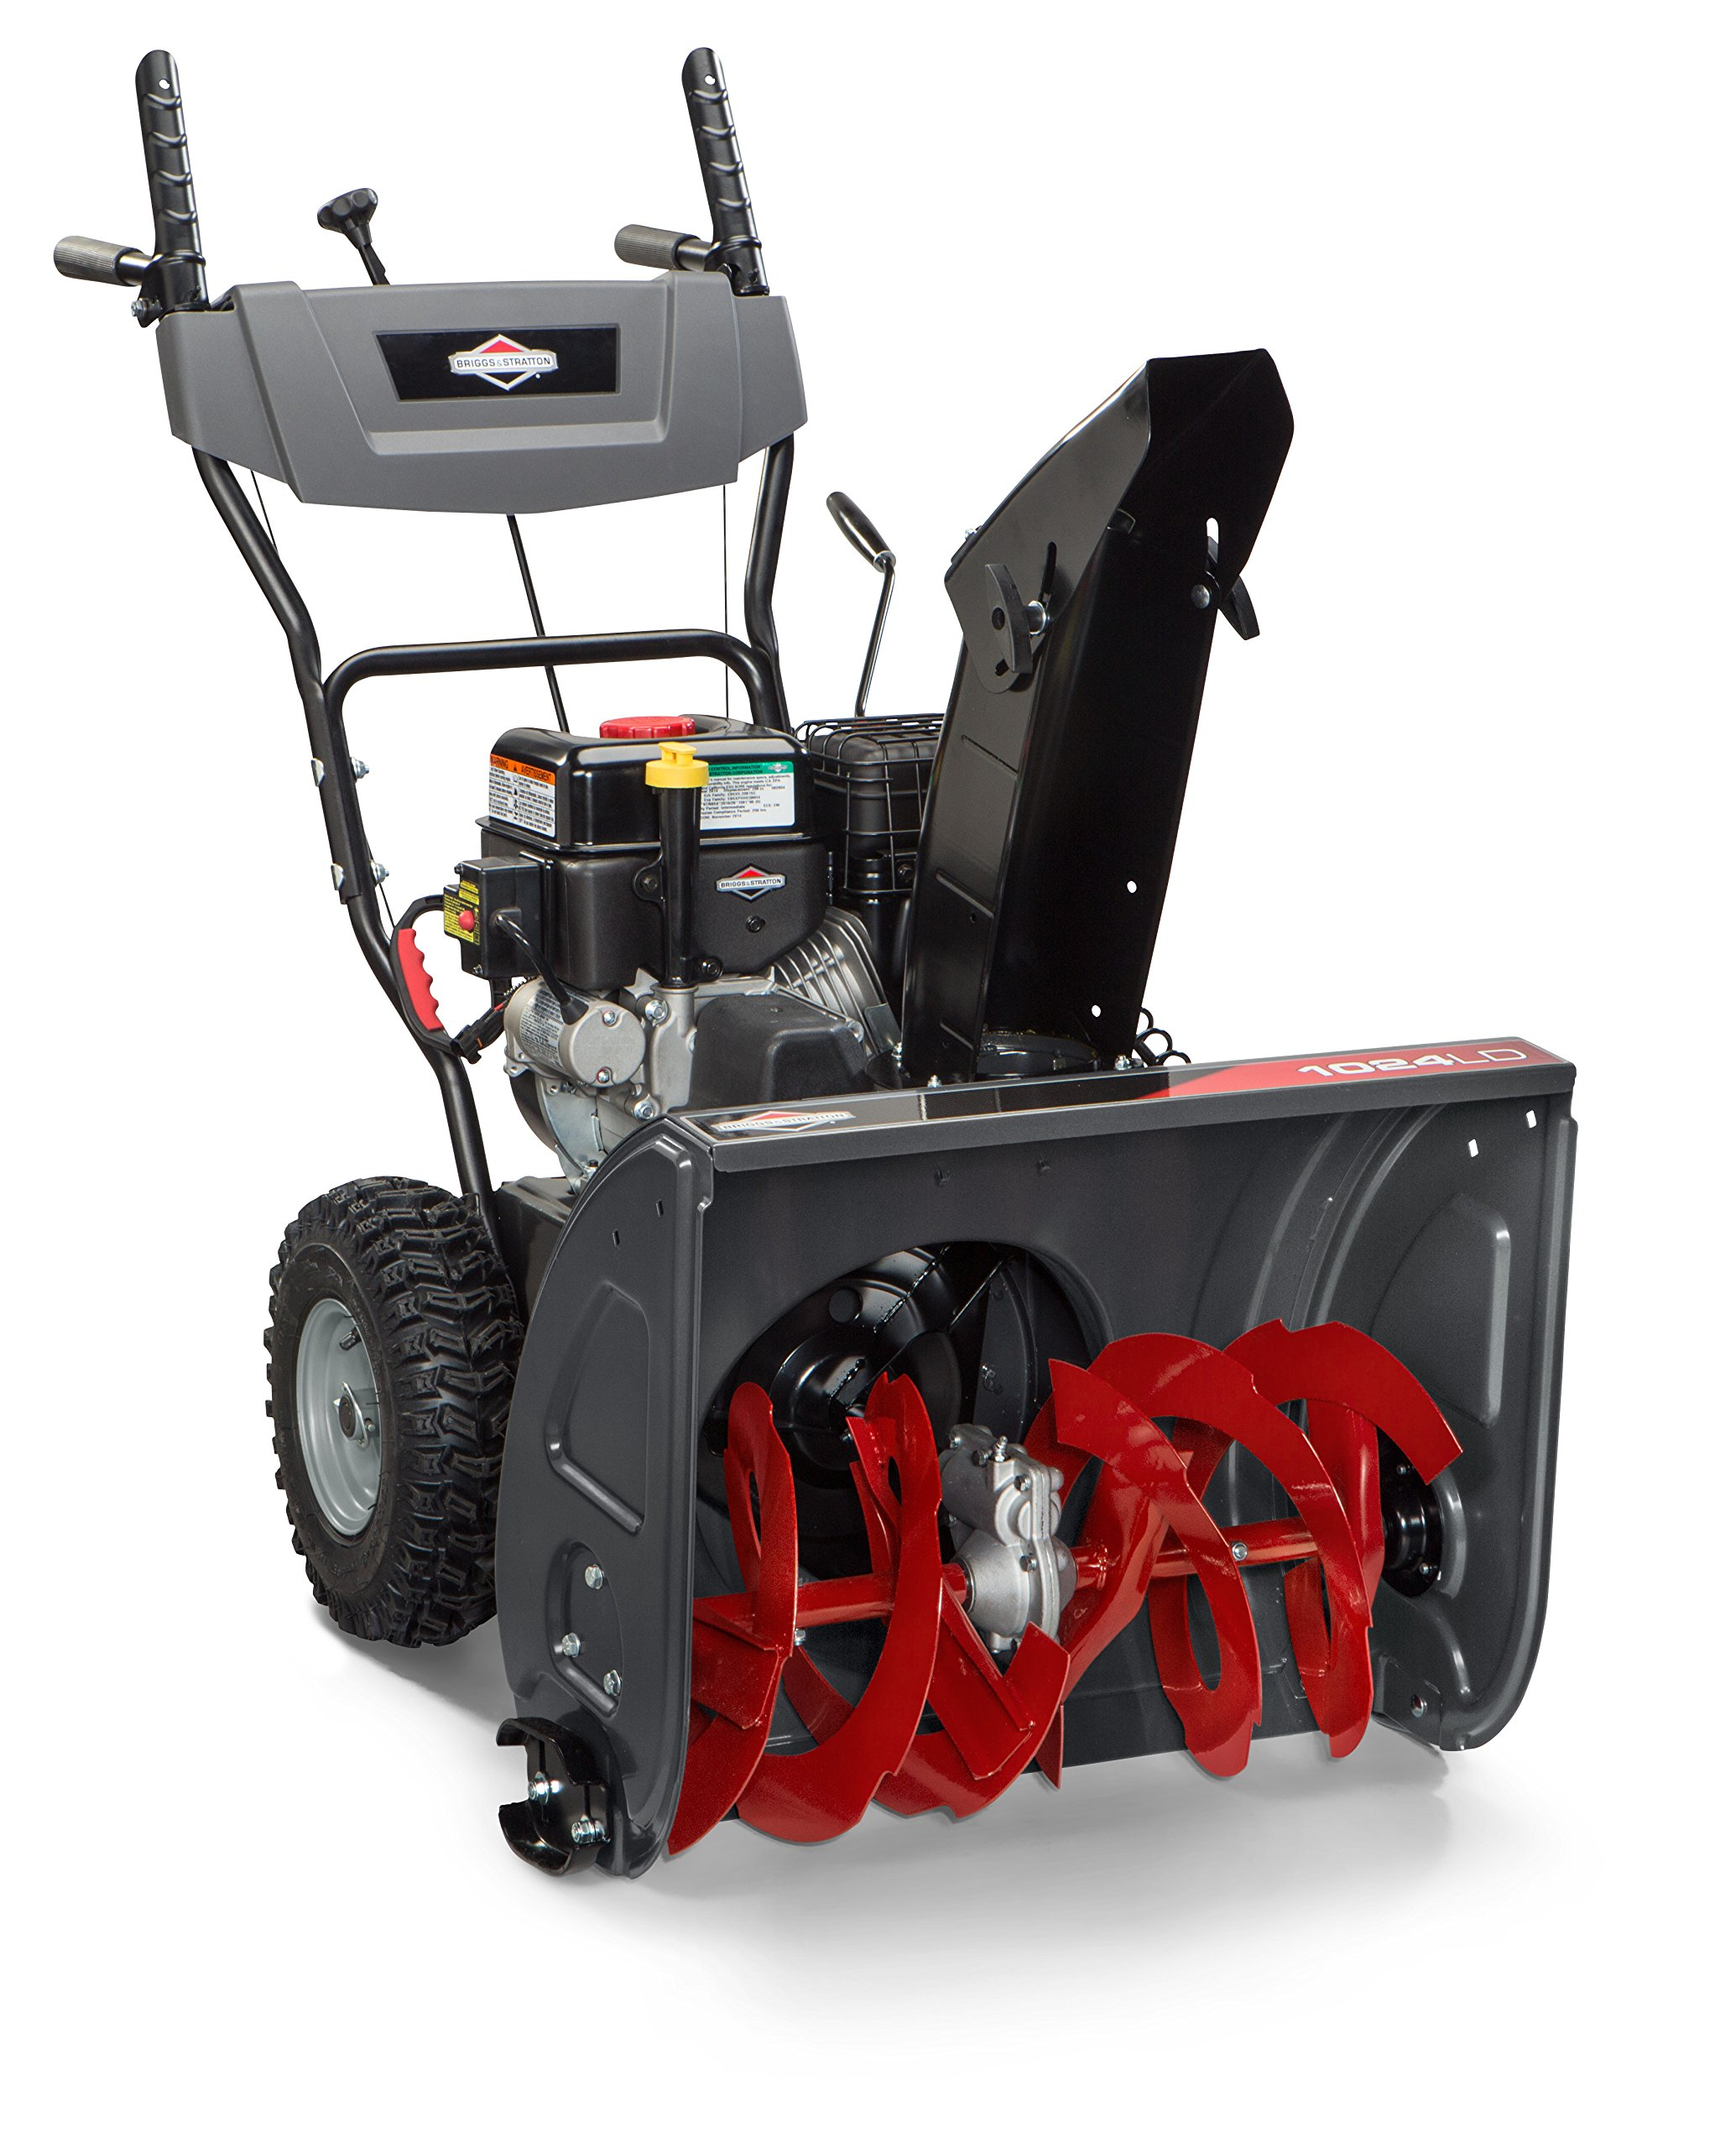 Briggs & Stratton 1696610 Dual-Stage Snow Thrower with 208cc Engine and Electric Start, 24''